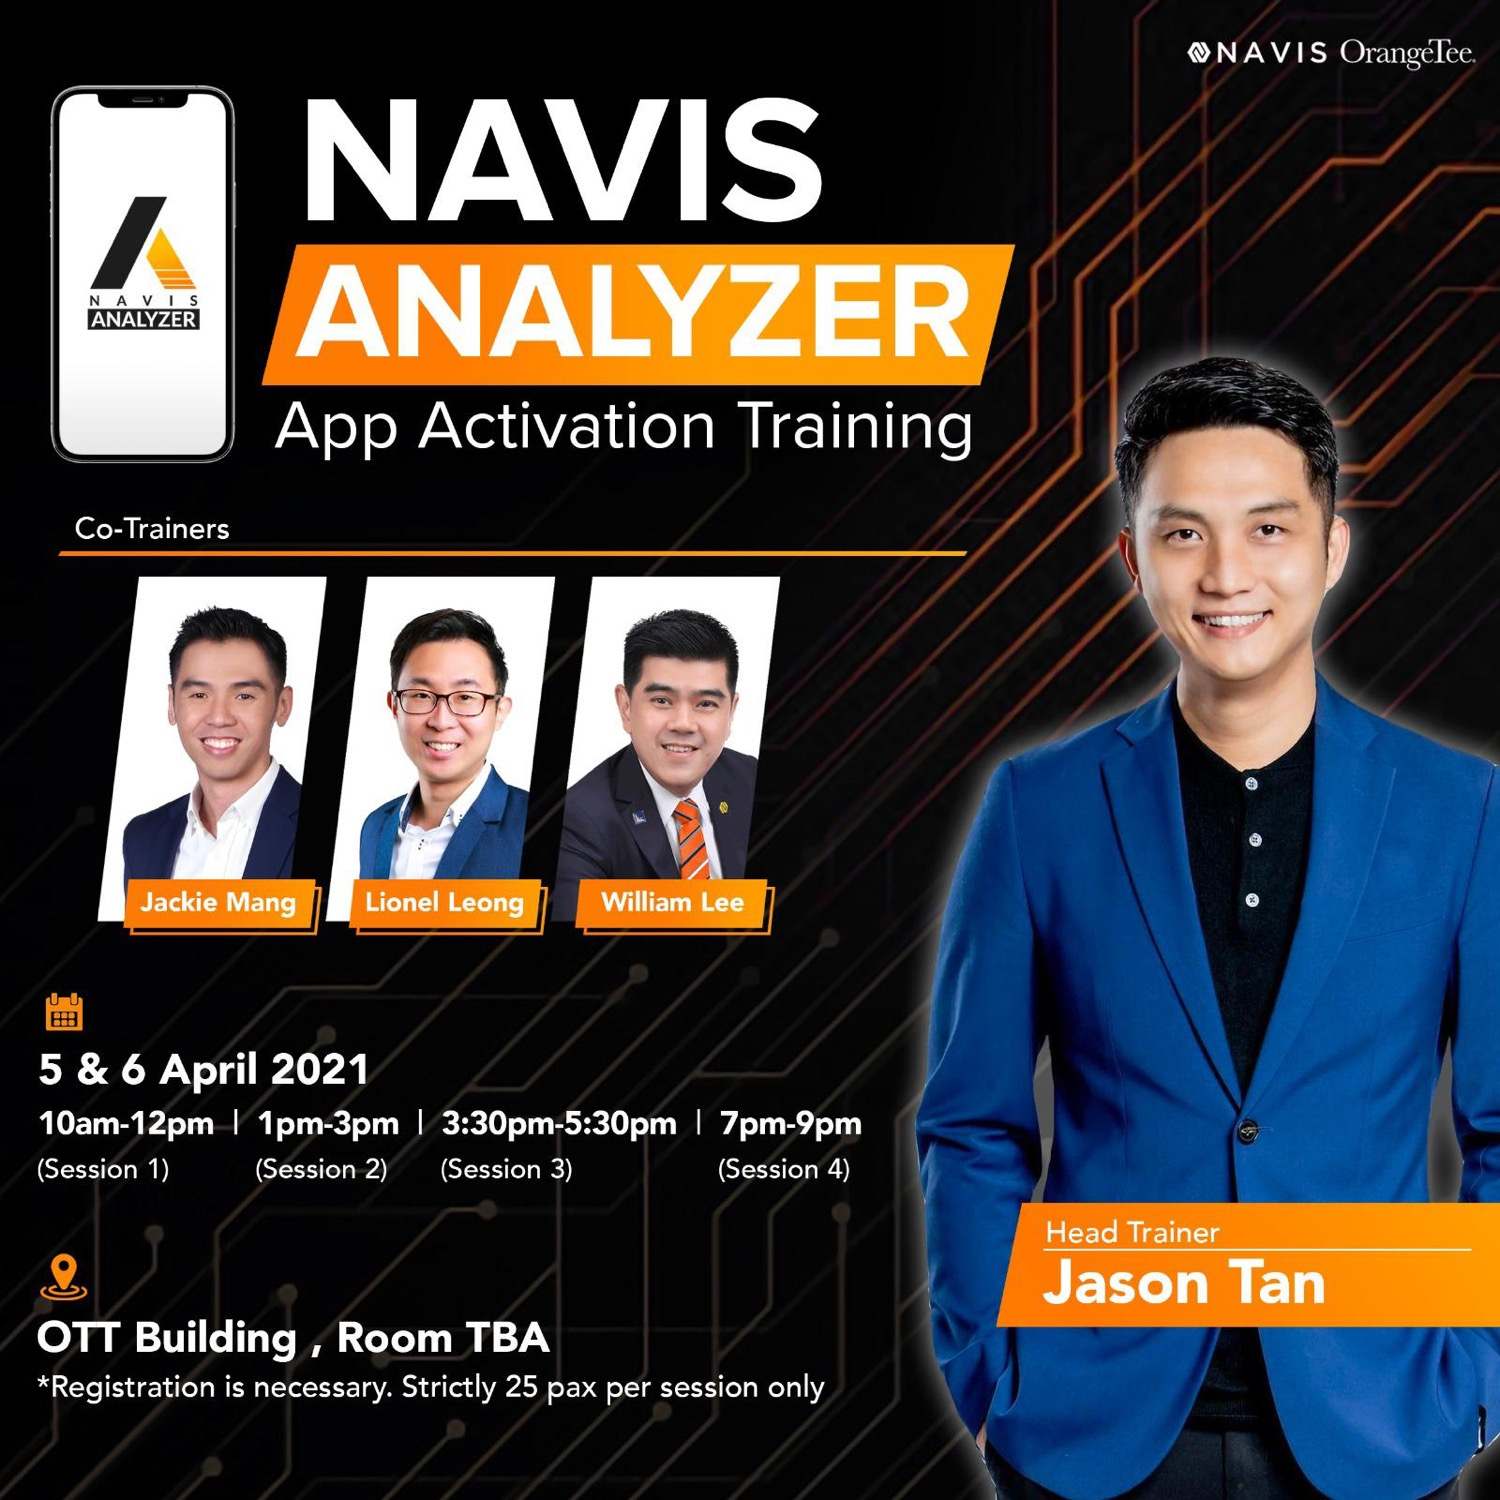 NAVIS Analyzer Mobile App Empowers Our Agents With Cutting Edge Data